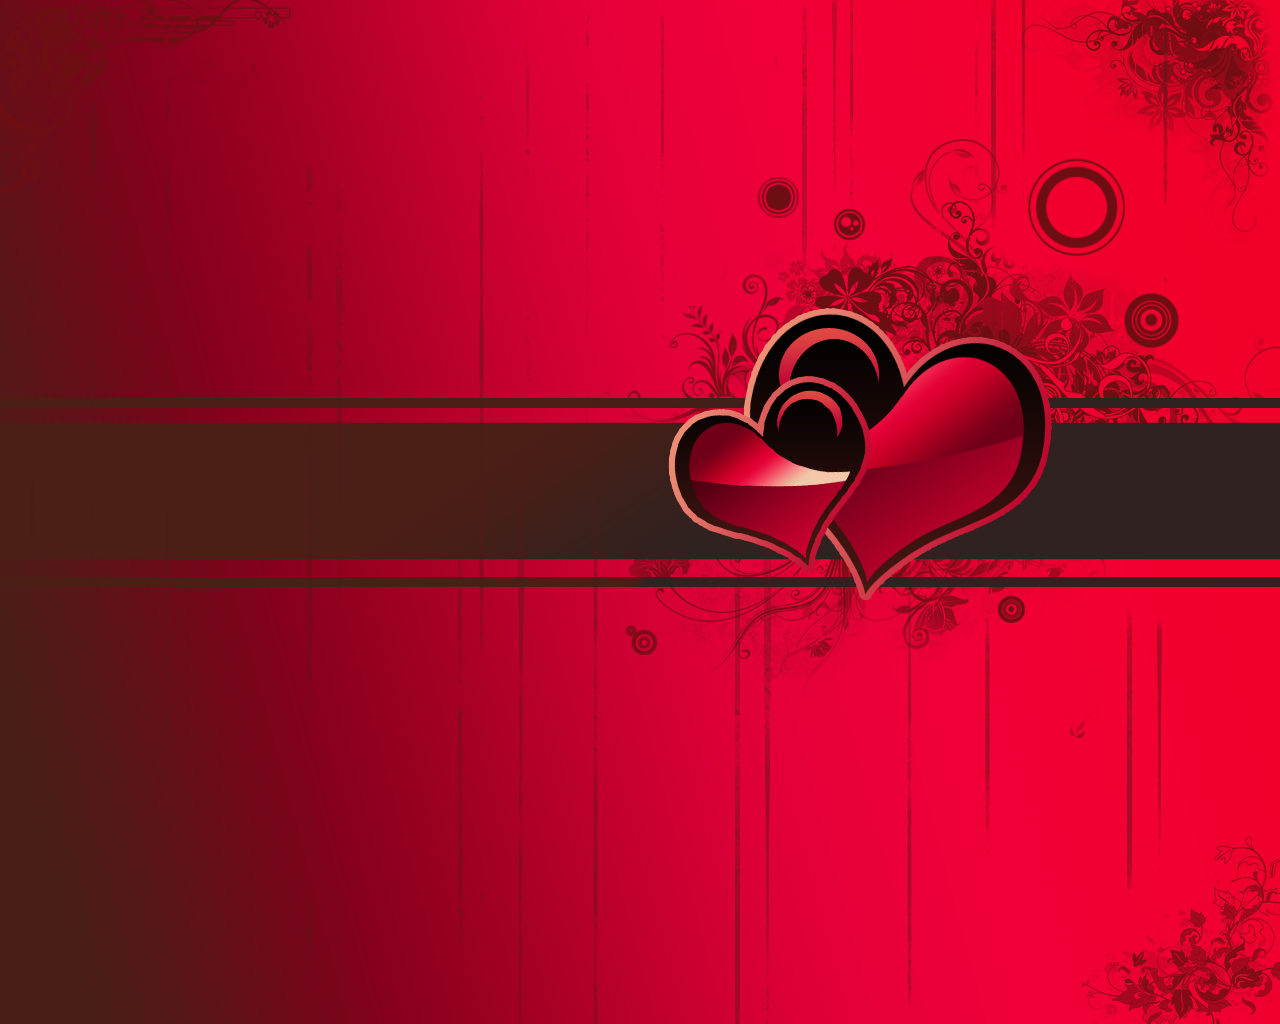 www.valentine wallpaper 2017 - Grasscloth Wallpaper